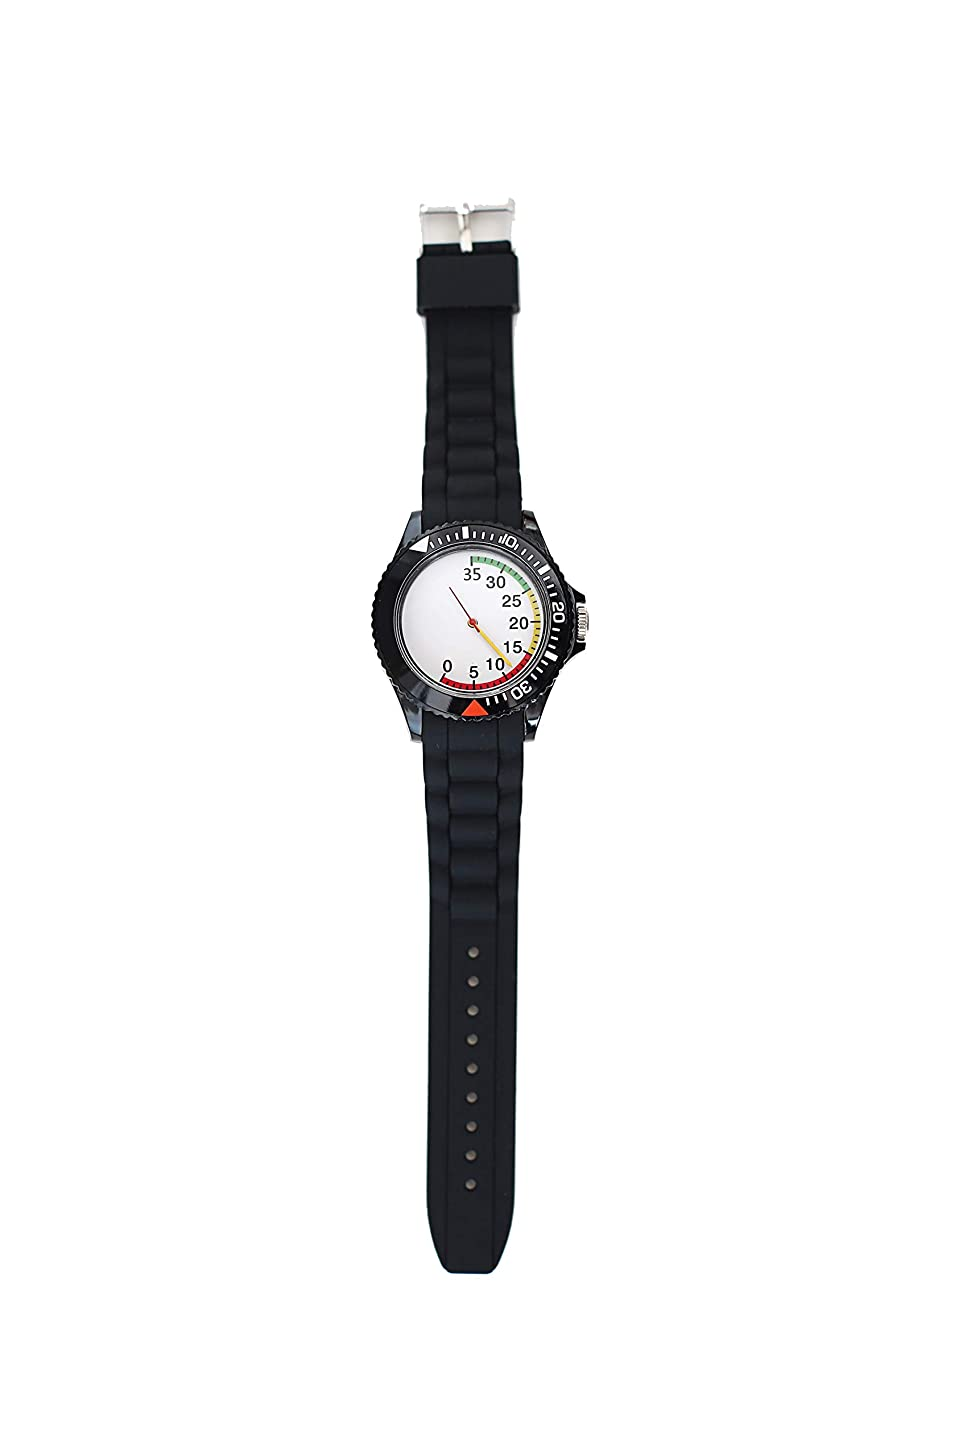 Toptier Custom LSAT Watch for LSAT Exam Prep